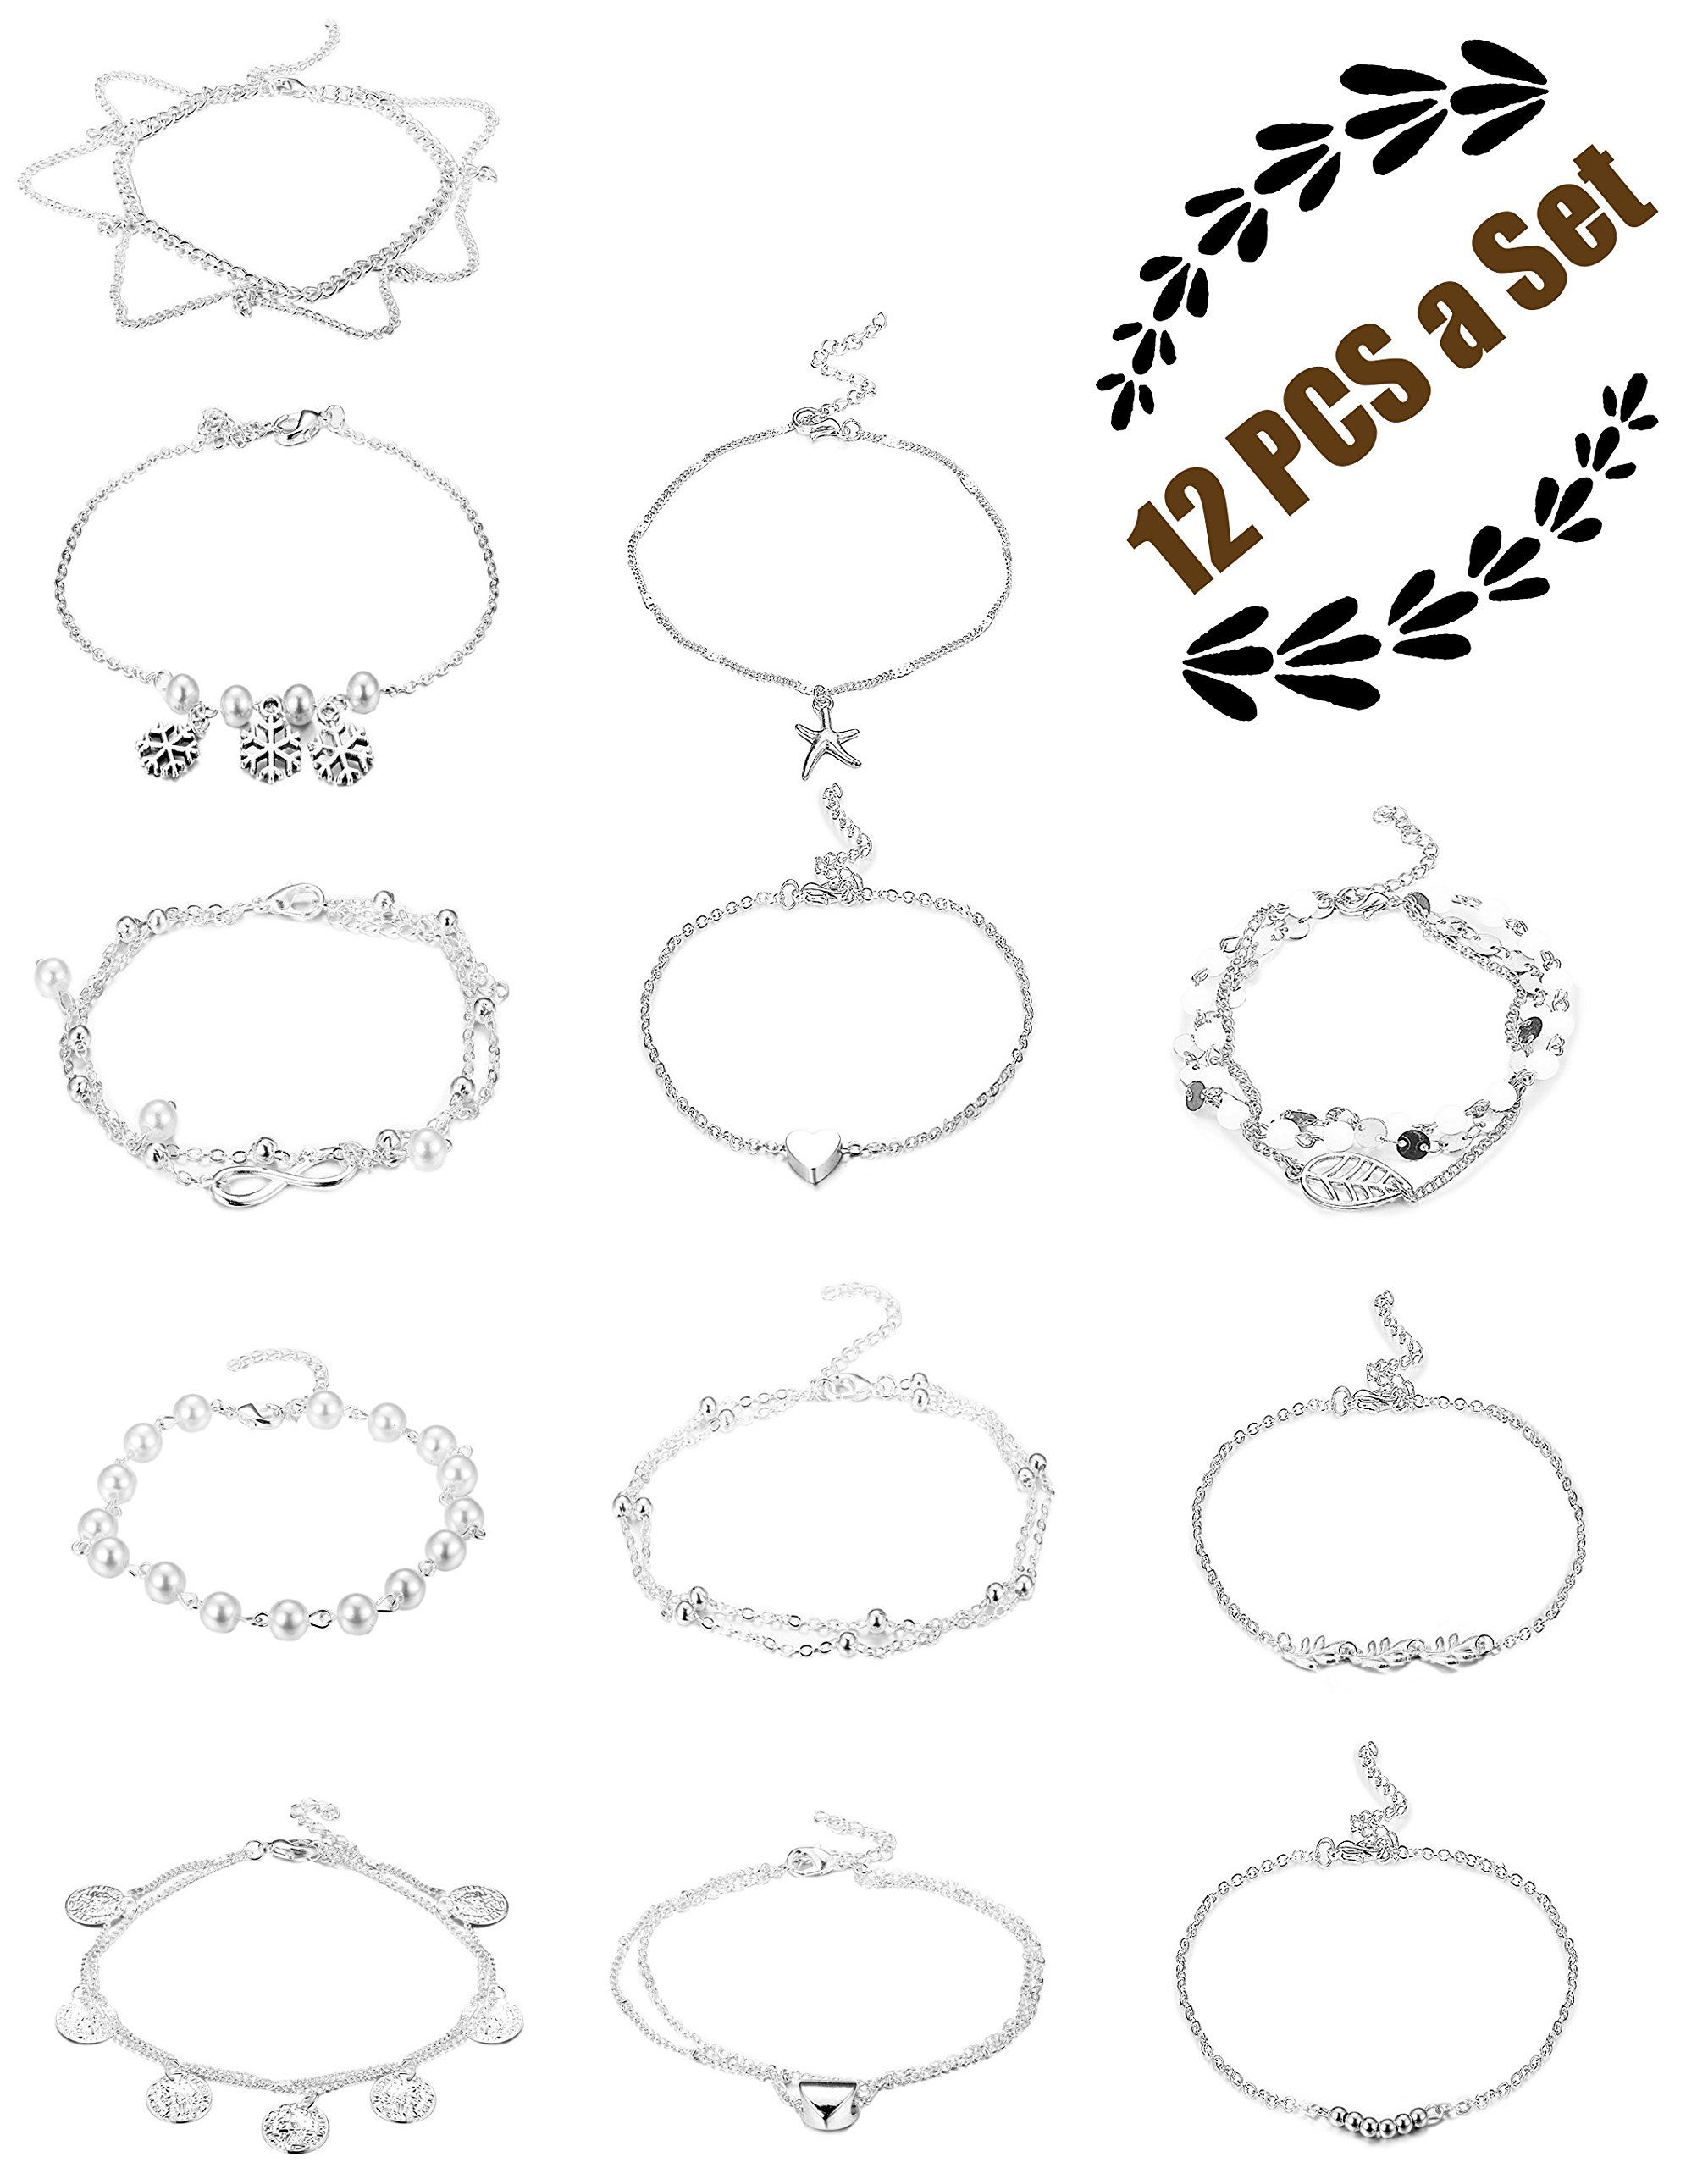 FIBO STEEL 12 Pcs Anklets for Women Girls Chain Bracelets Adjustable Beach Foot Jewelry